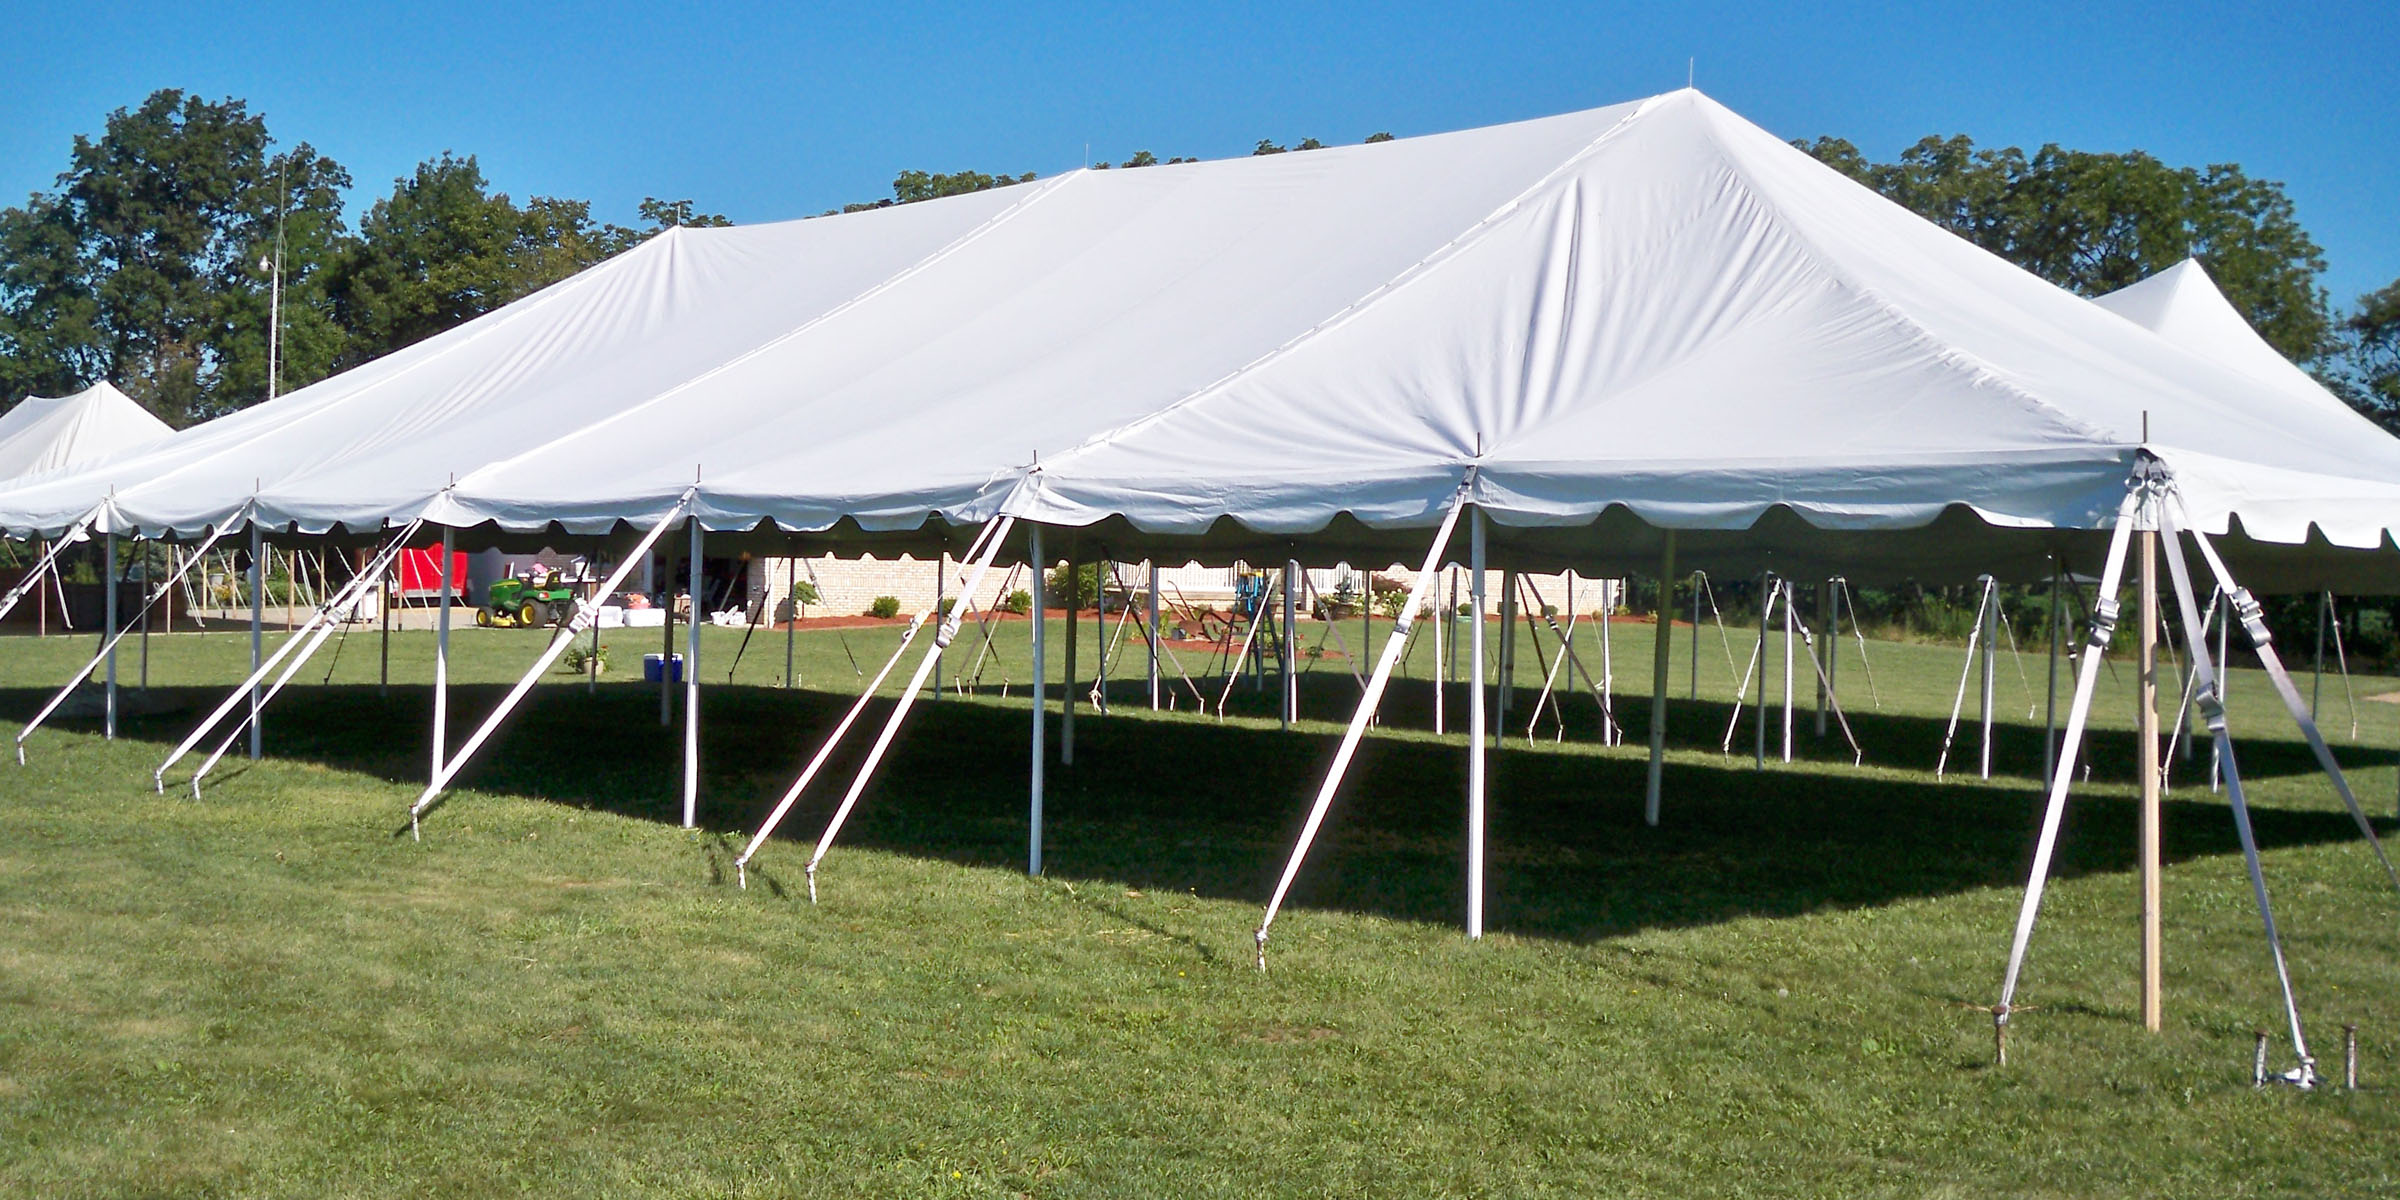 Myers Tent Table & Chair Rentals Linen Rental